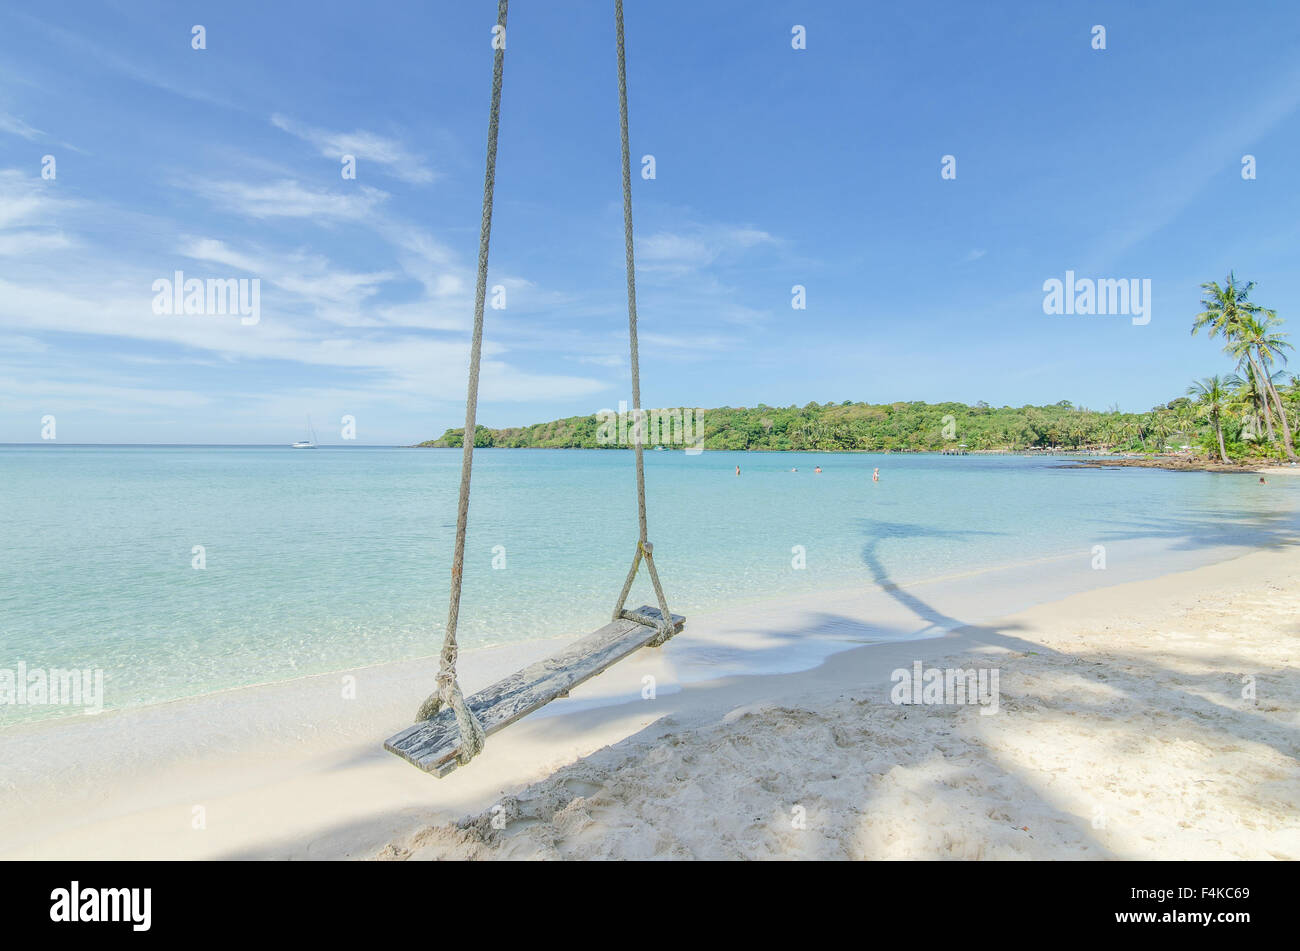 Summer, Travel, Vacation and Holiday concept - Swing hang from coconut palm tree over beach sea in Phuket ,Thailand. - Stock Image